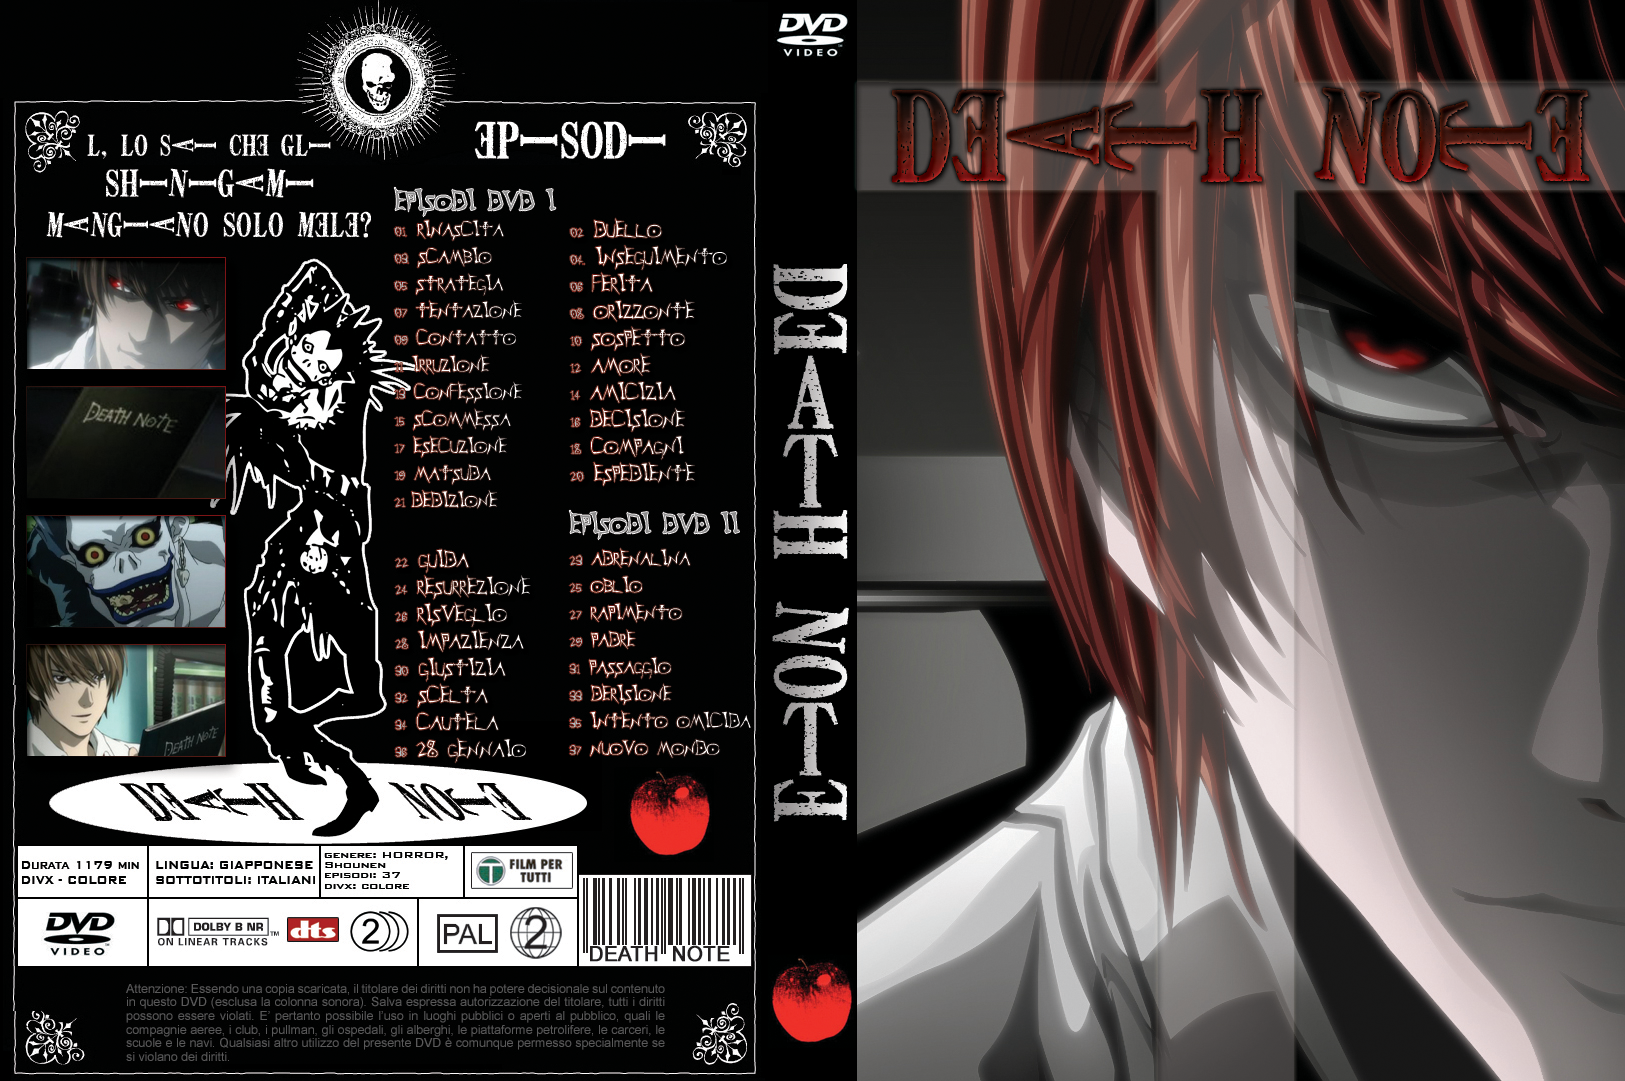 Death Note Cover DVD - by Me by SaberM on deviantART